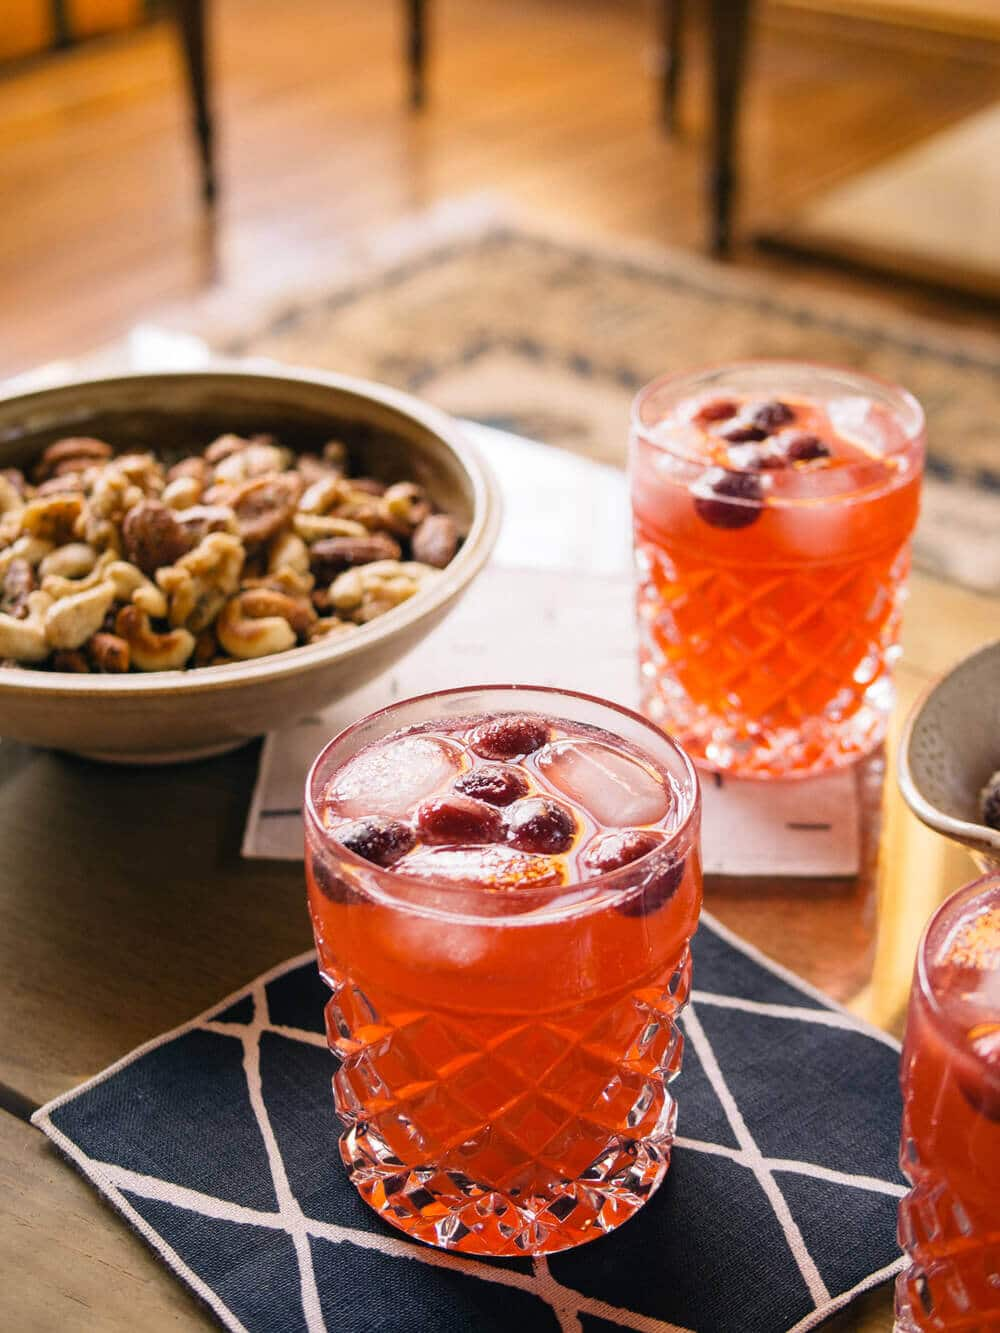 Cranberry moscow mules, sugared cranberries, and holiday nuts